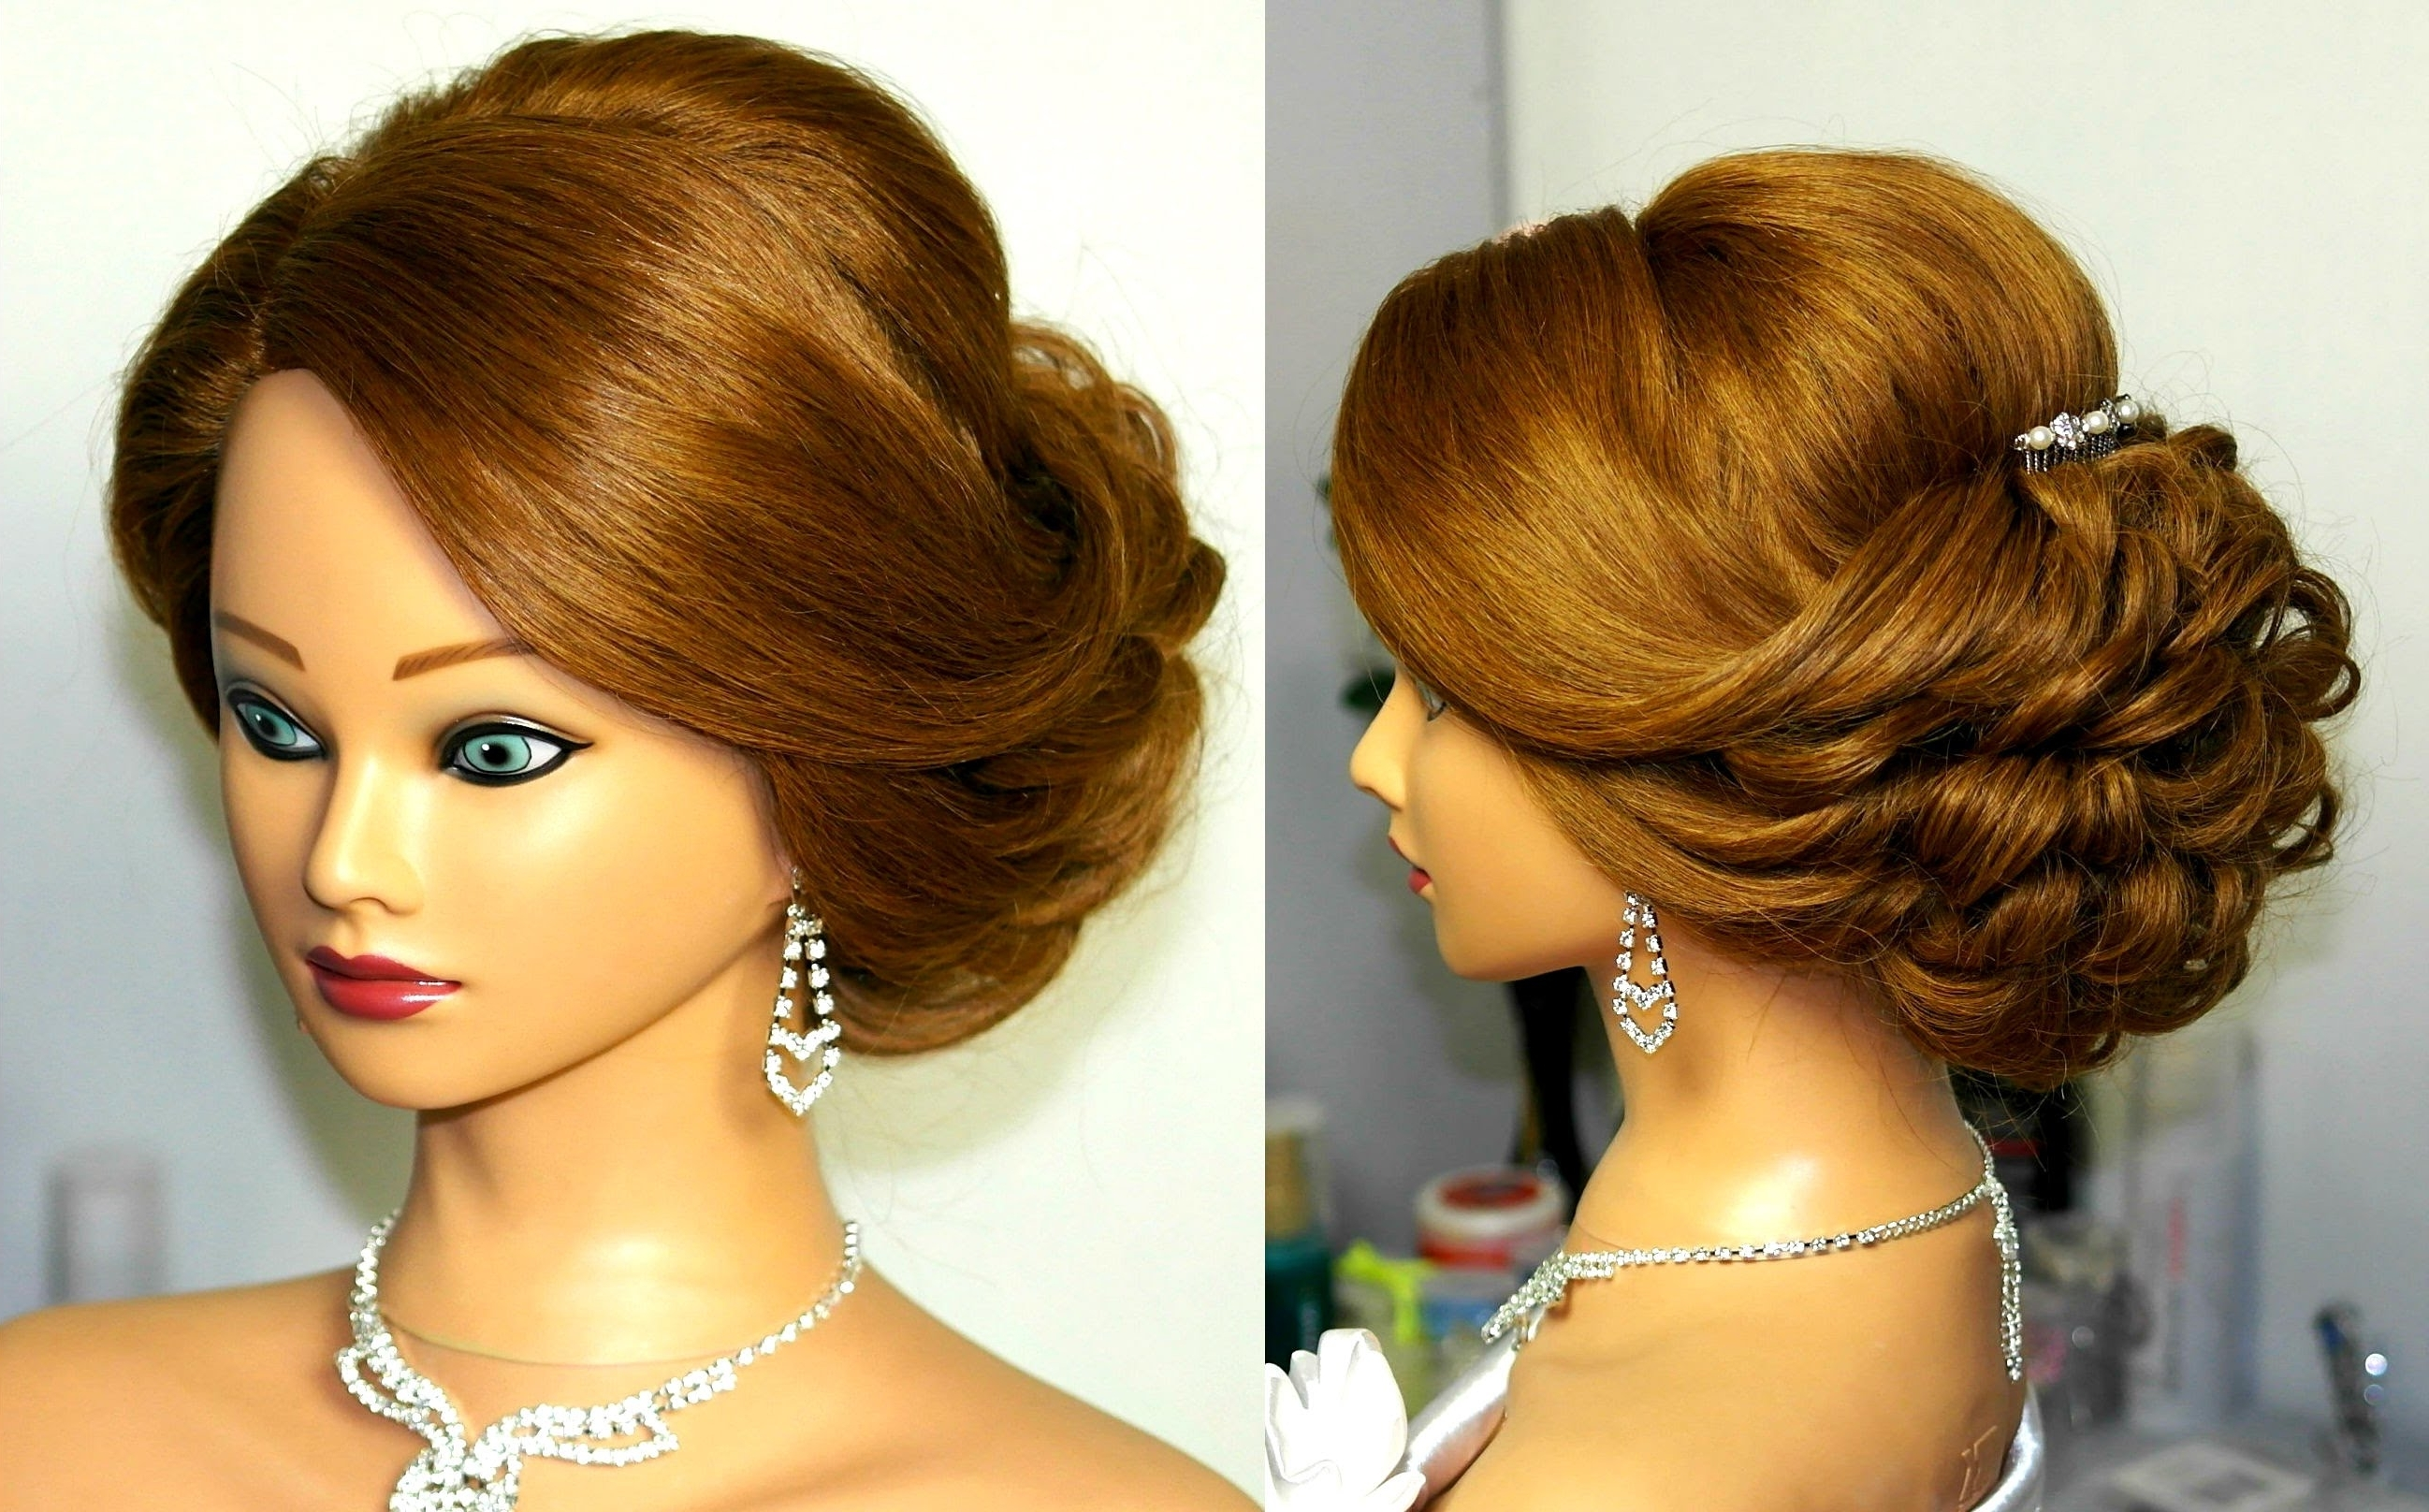 Wedding Party Hairstyles For Long Hair – Hairstyle For Women & Man Within Indian Wedding Updo Hairstyles (View 12 of 15)